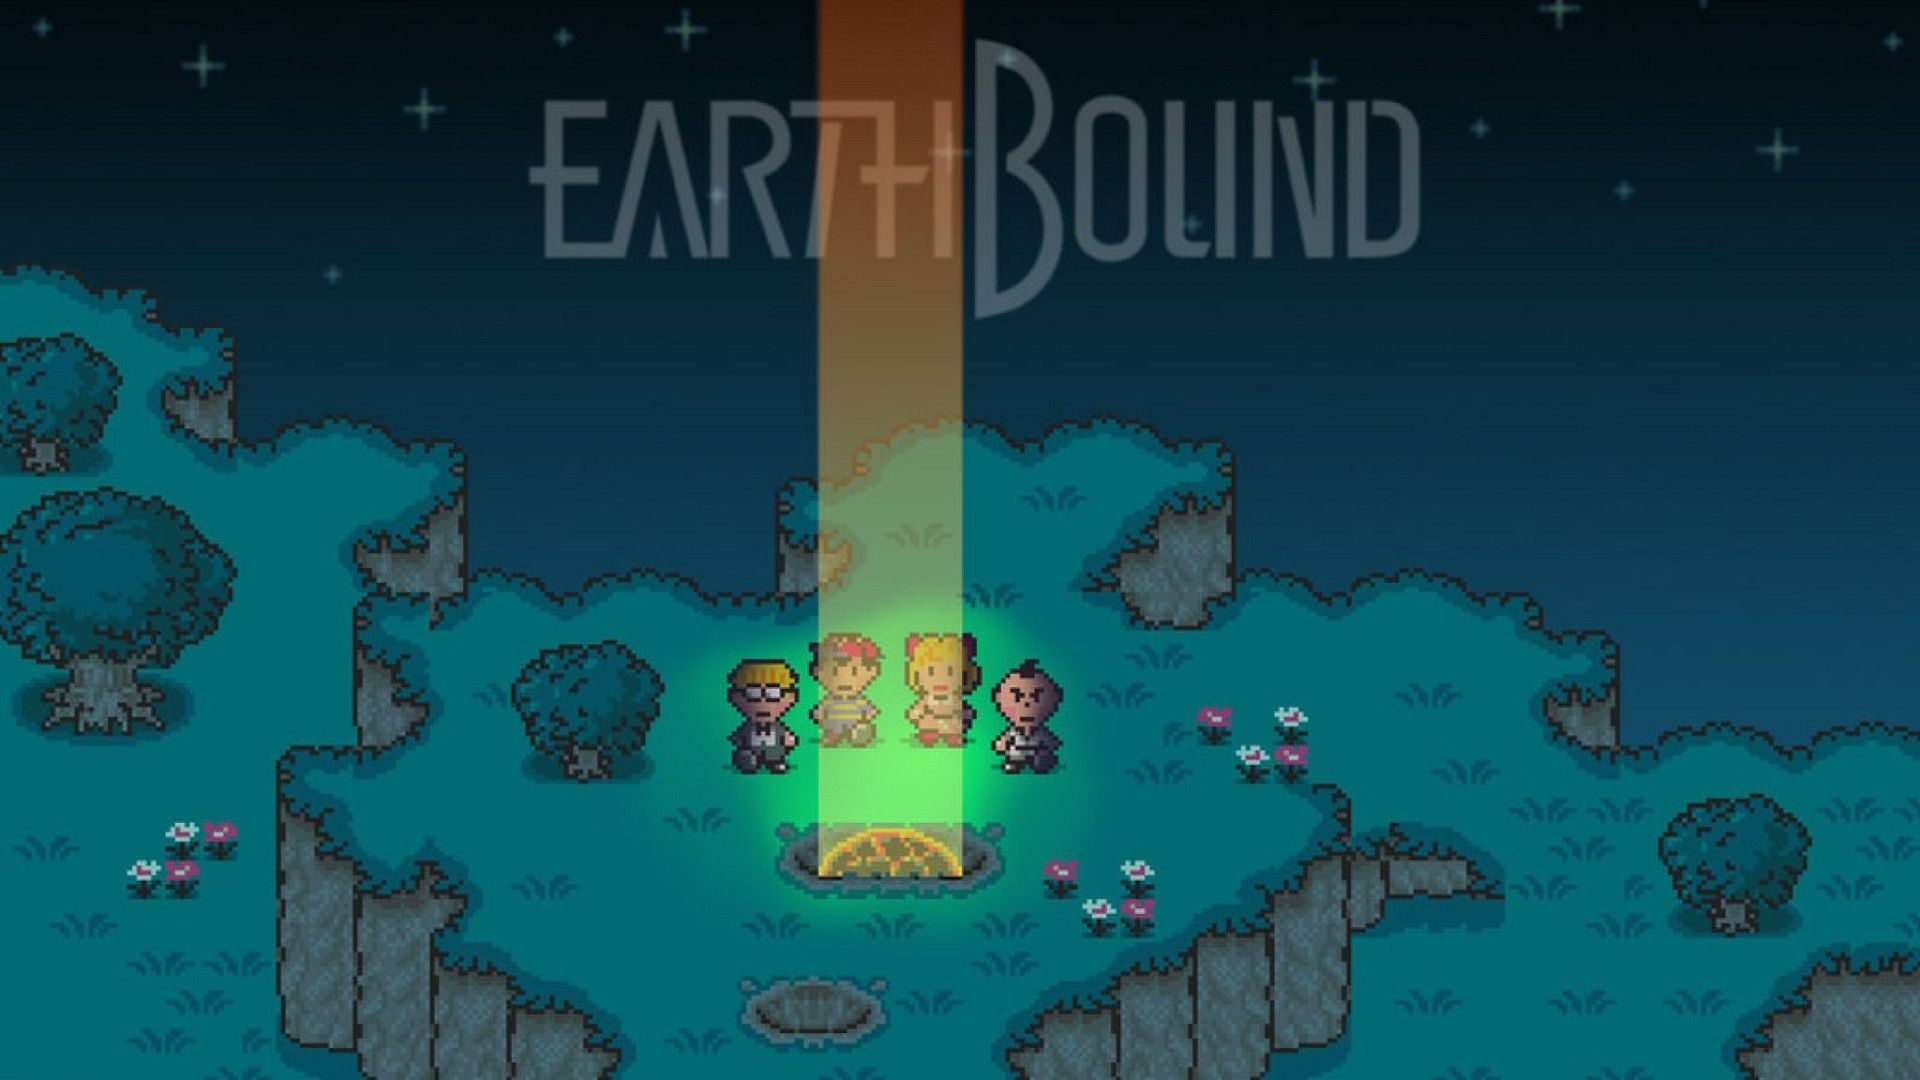 Earthbound Wallpapers Top Free Earthbound Backgrounds Wallpaperaccess